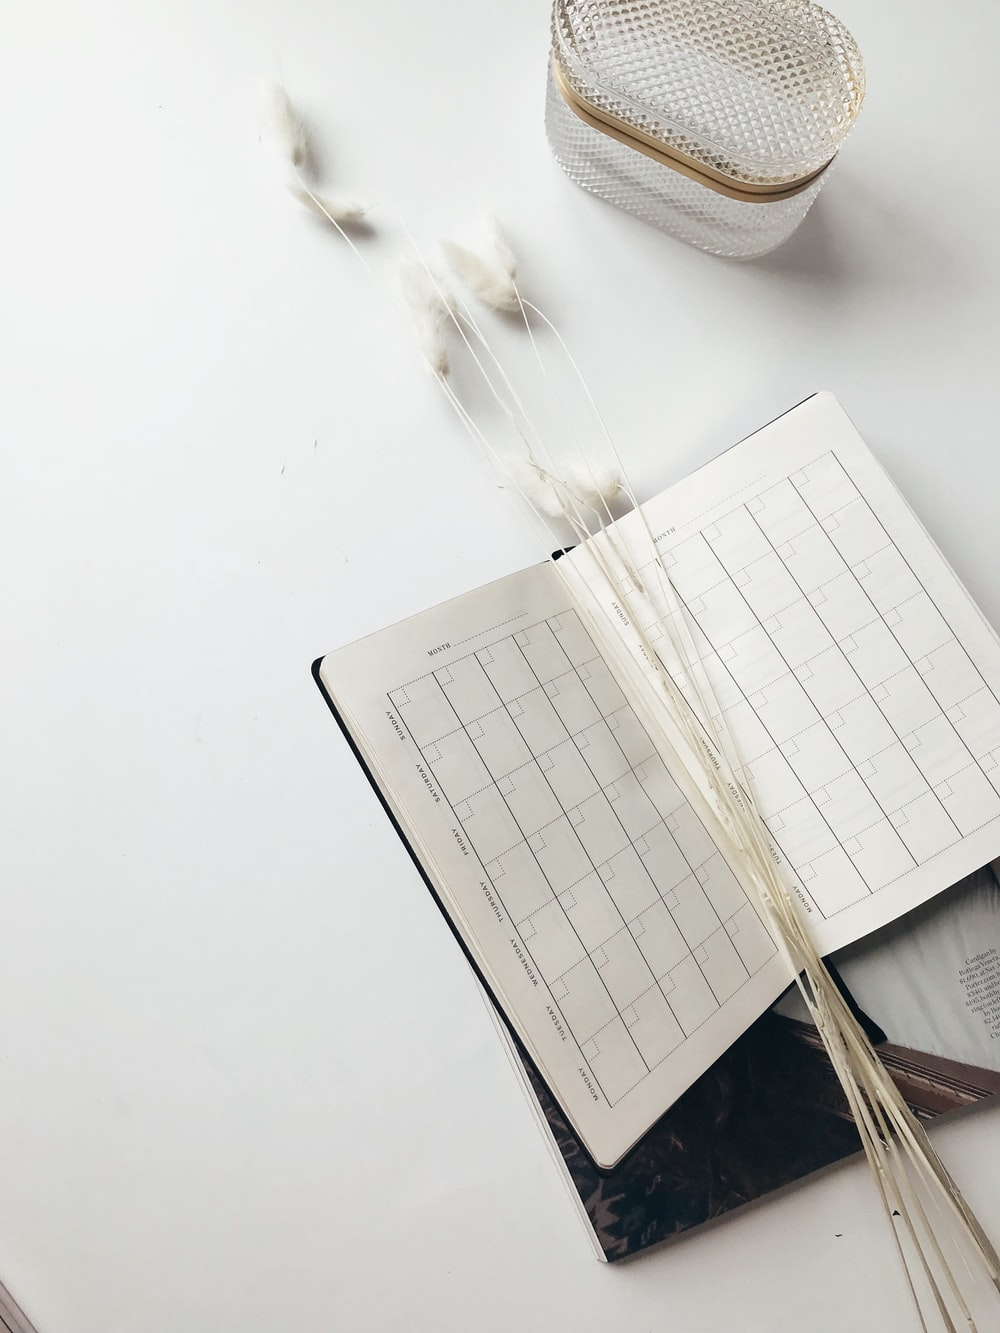 monthly planner book on white surface